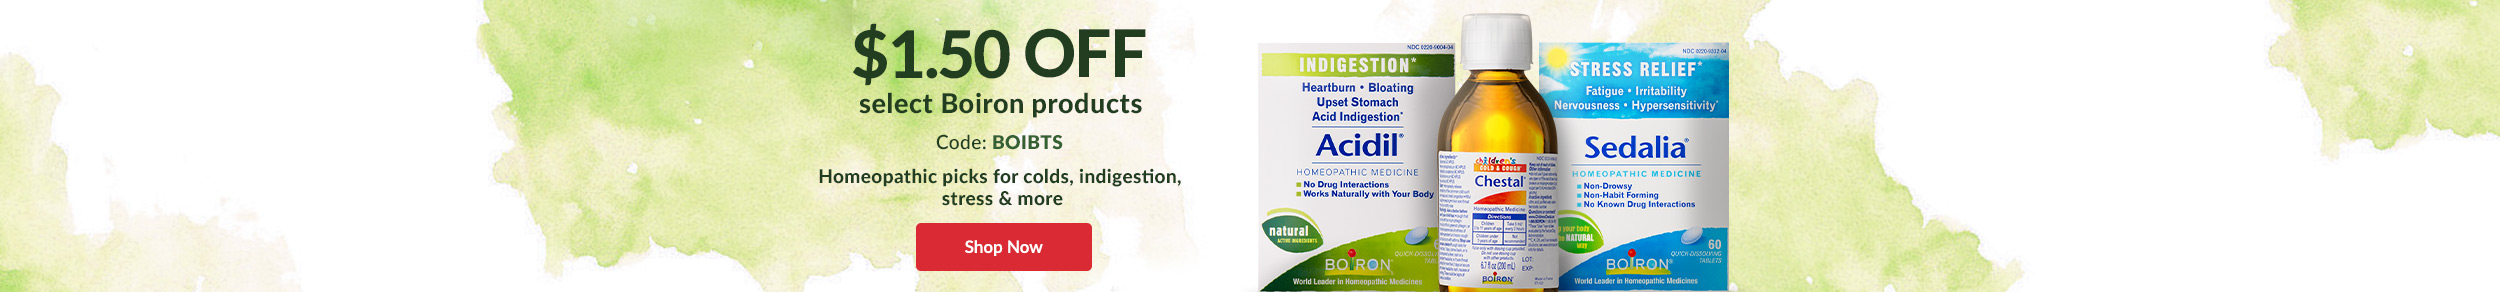 $1.50 OFF select Boiron products. Code: BOIBTS - Homeopathic picks for colds, indigestion, stress & more - SHOP NOW!